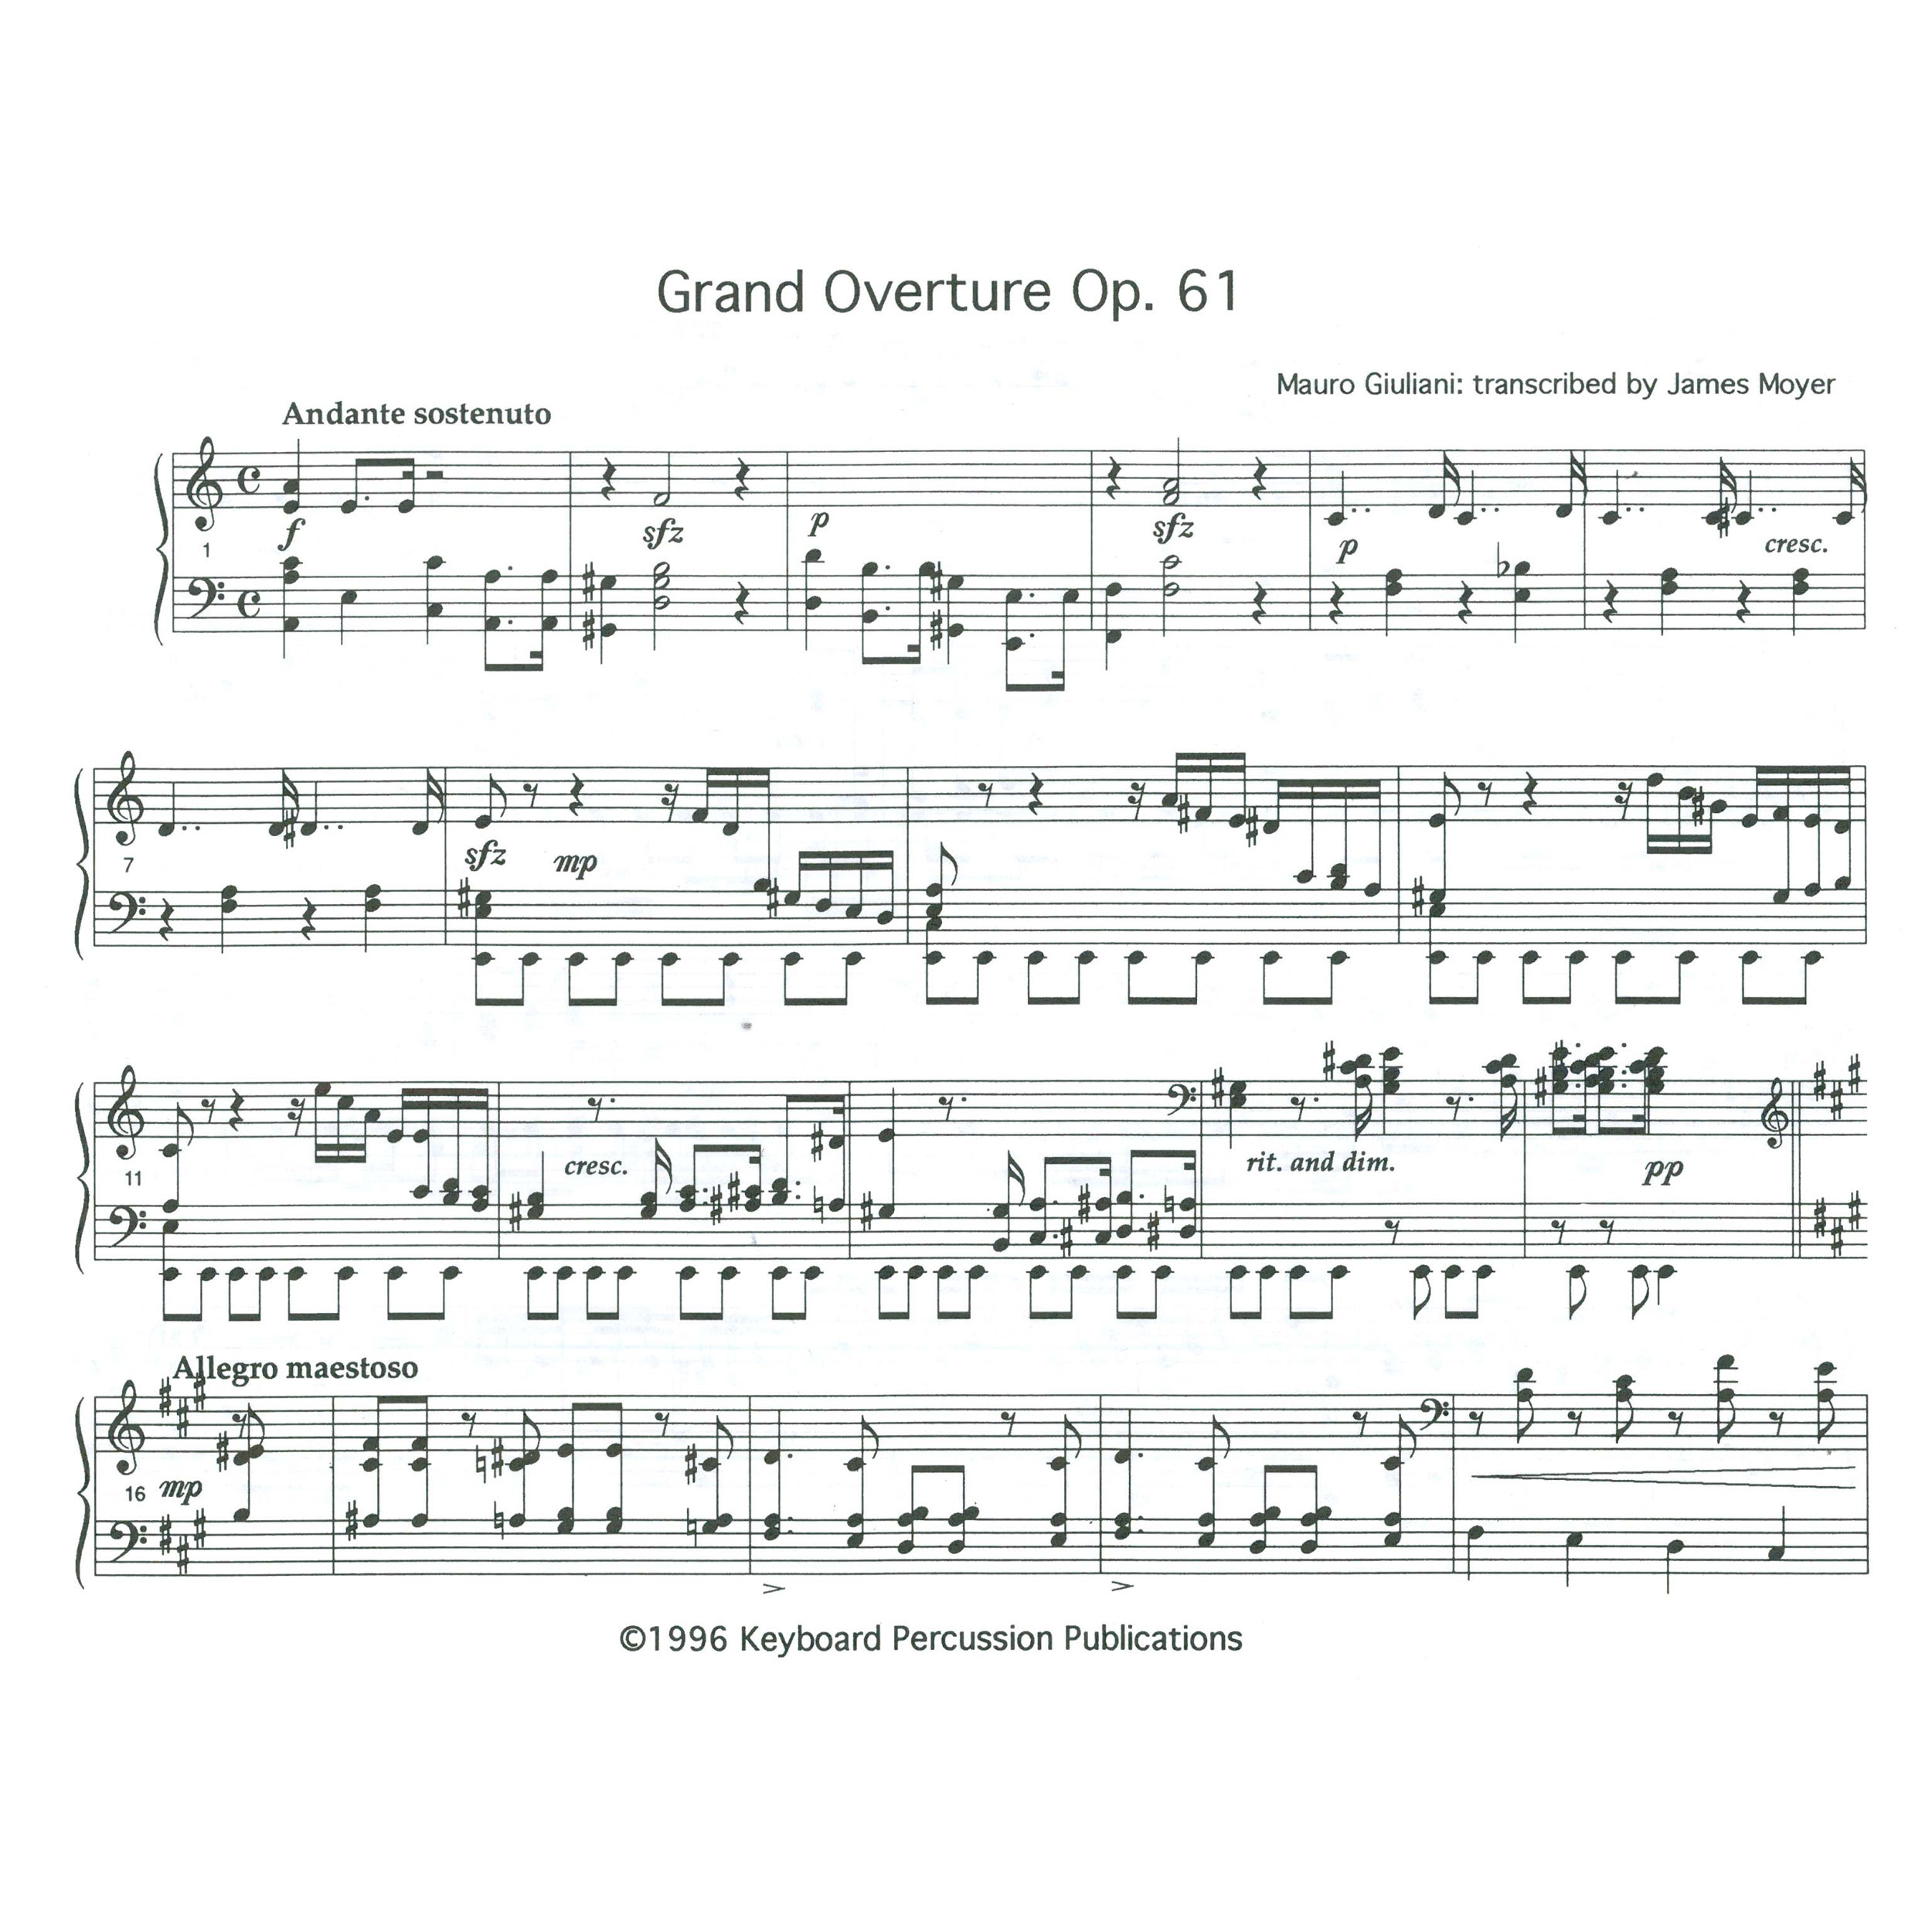 James Moyer; Alternate Image for Grand Overture Op. 61 by Mauro Giuliani trans.